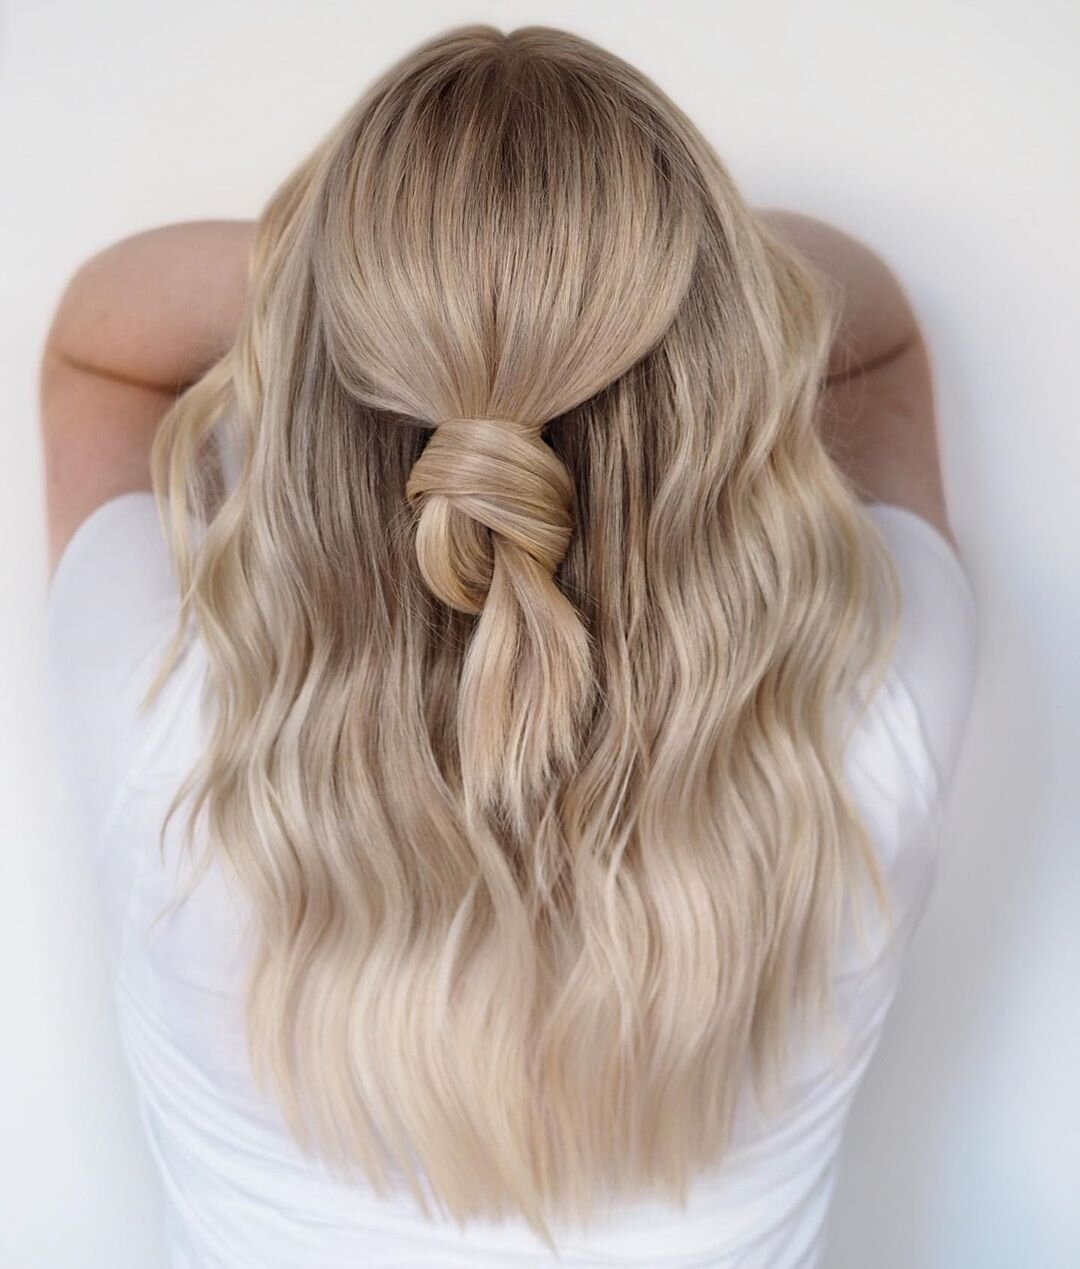 13_Septe.ber_Hairbylindal.jpg